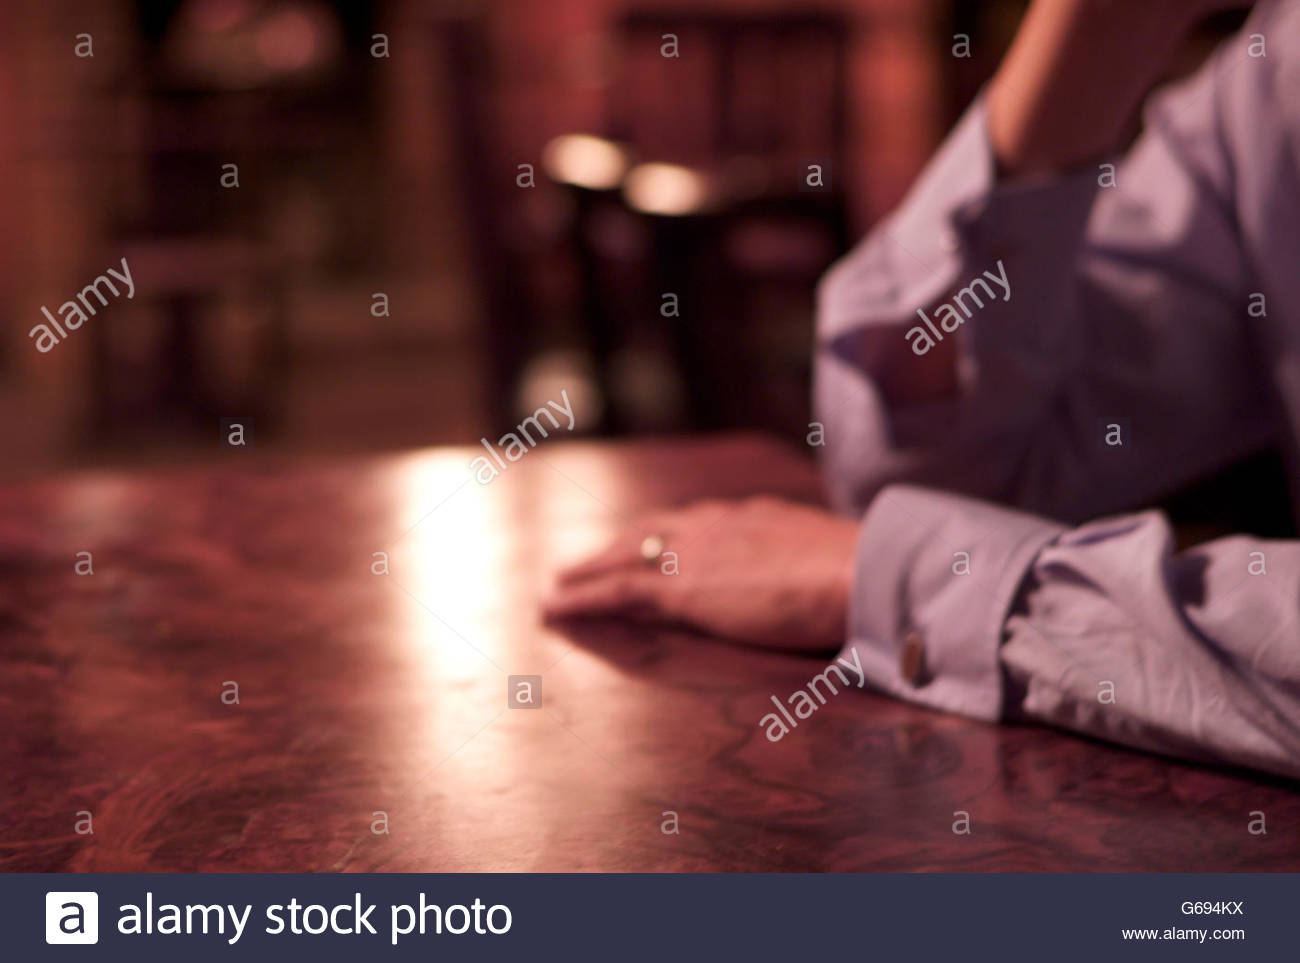 Man's hand lying on pub table with his wedding ring shining - Stock Image